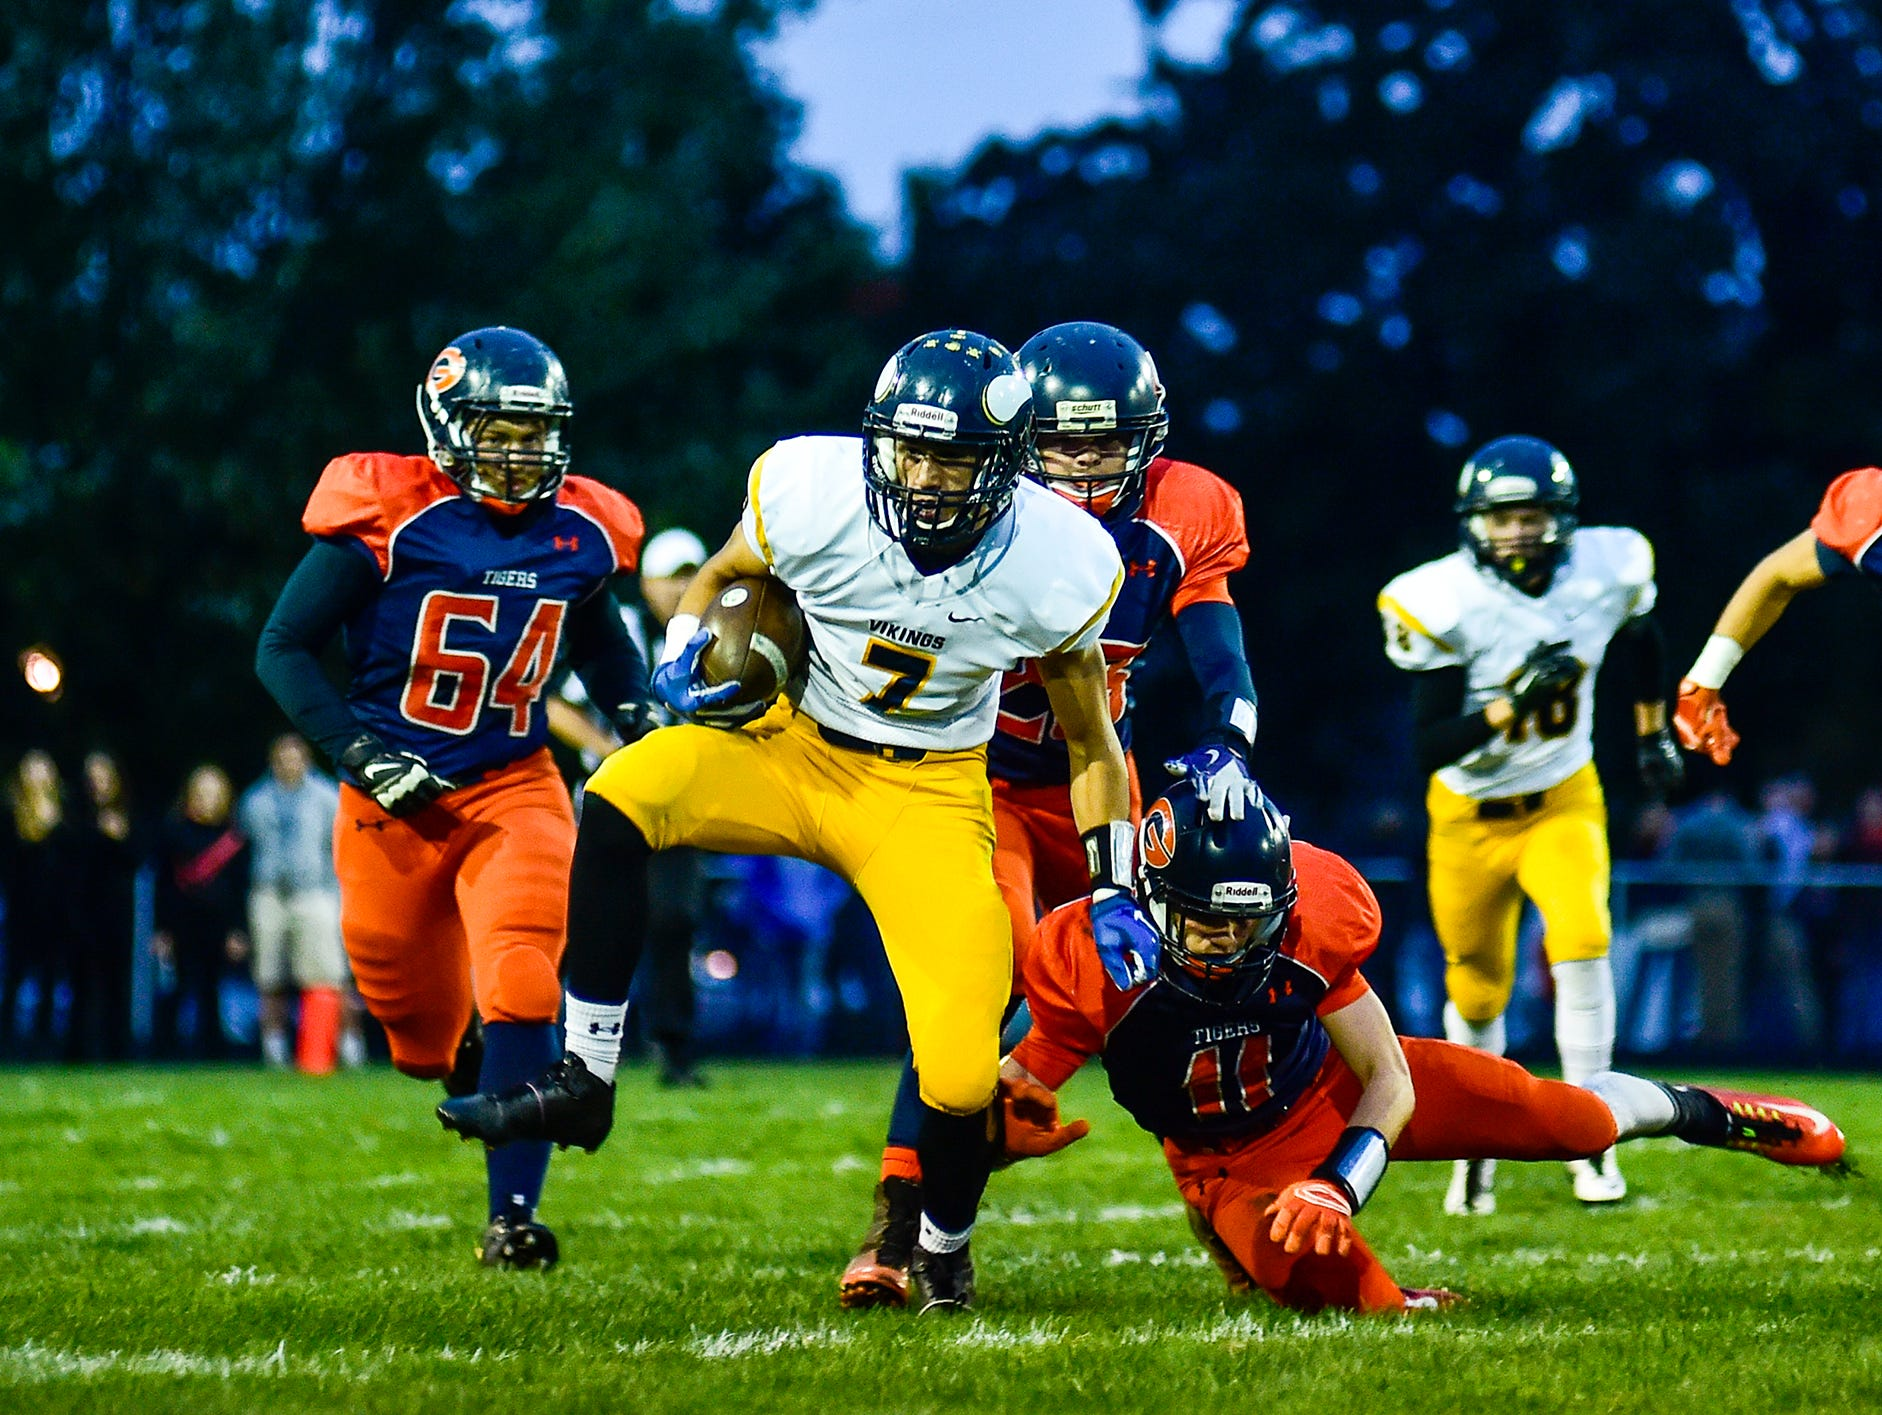 River Valley's Baily Cole makes a massive return after the first kickoff during the River Valley vs Galion football game in Galion.